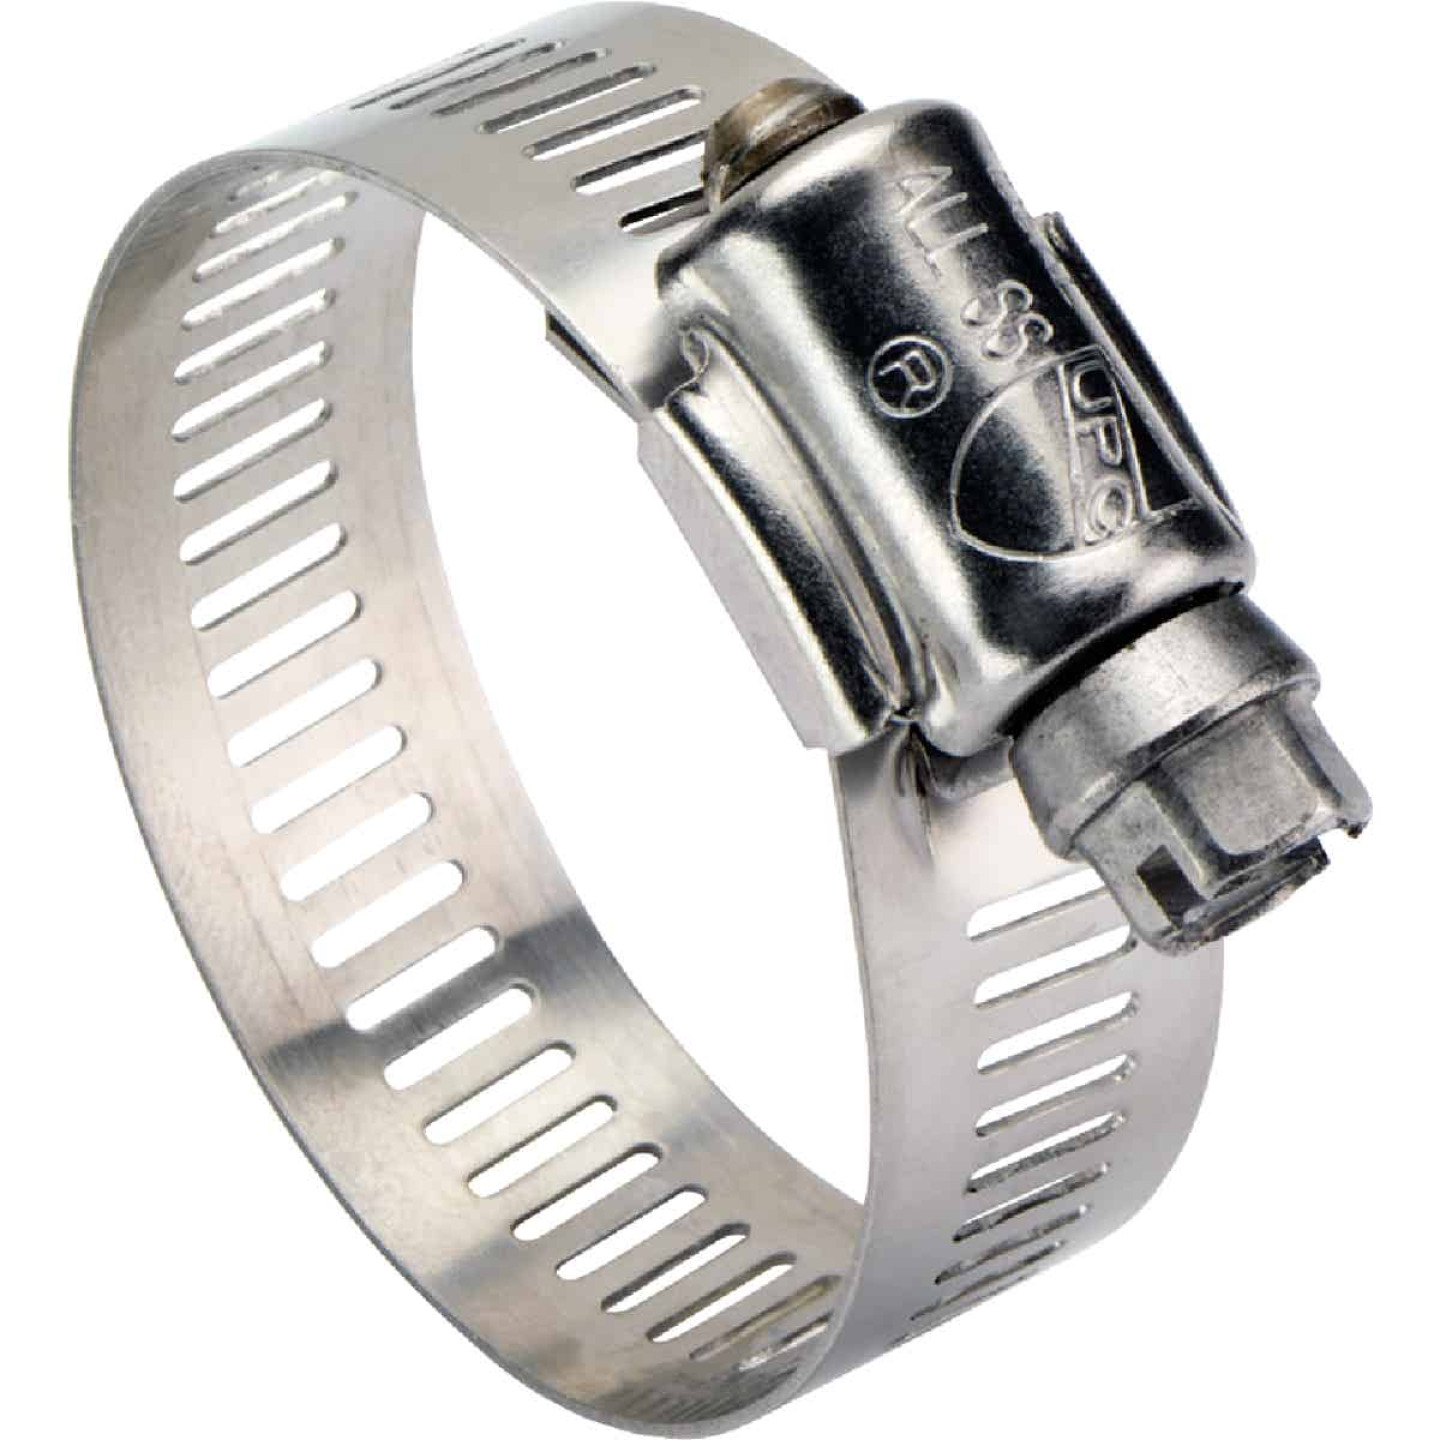 Ideal 1/2 In. - 1-1/4 In. All Stainless Steel Marine-Grade Hose Clamp Image 1